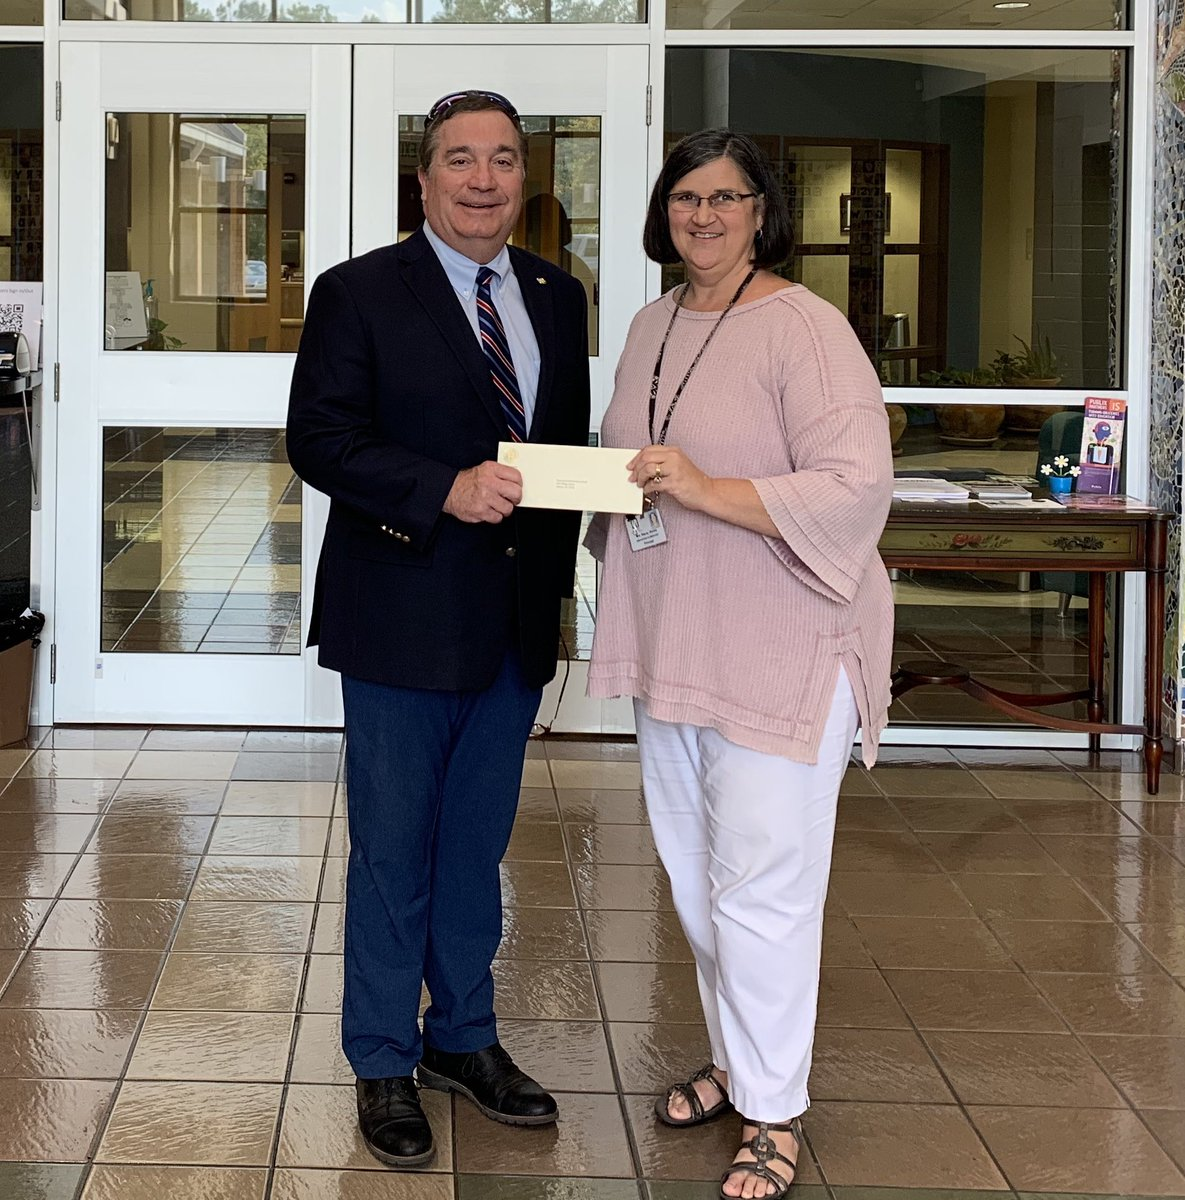 Thanks for donating to Greystone through a Community Grant, Senator Dan Roberts. We appreciate your support. #gsesjags @AlabamaSenate <br>http://pic.twitter.com/dWlQMF2dao